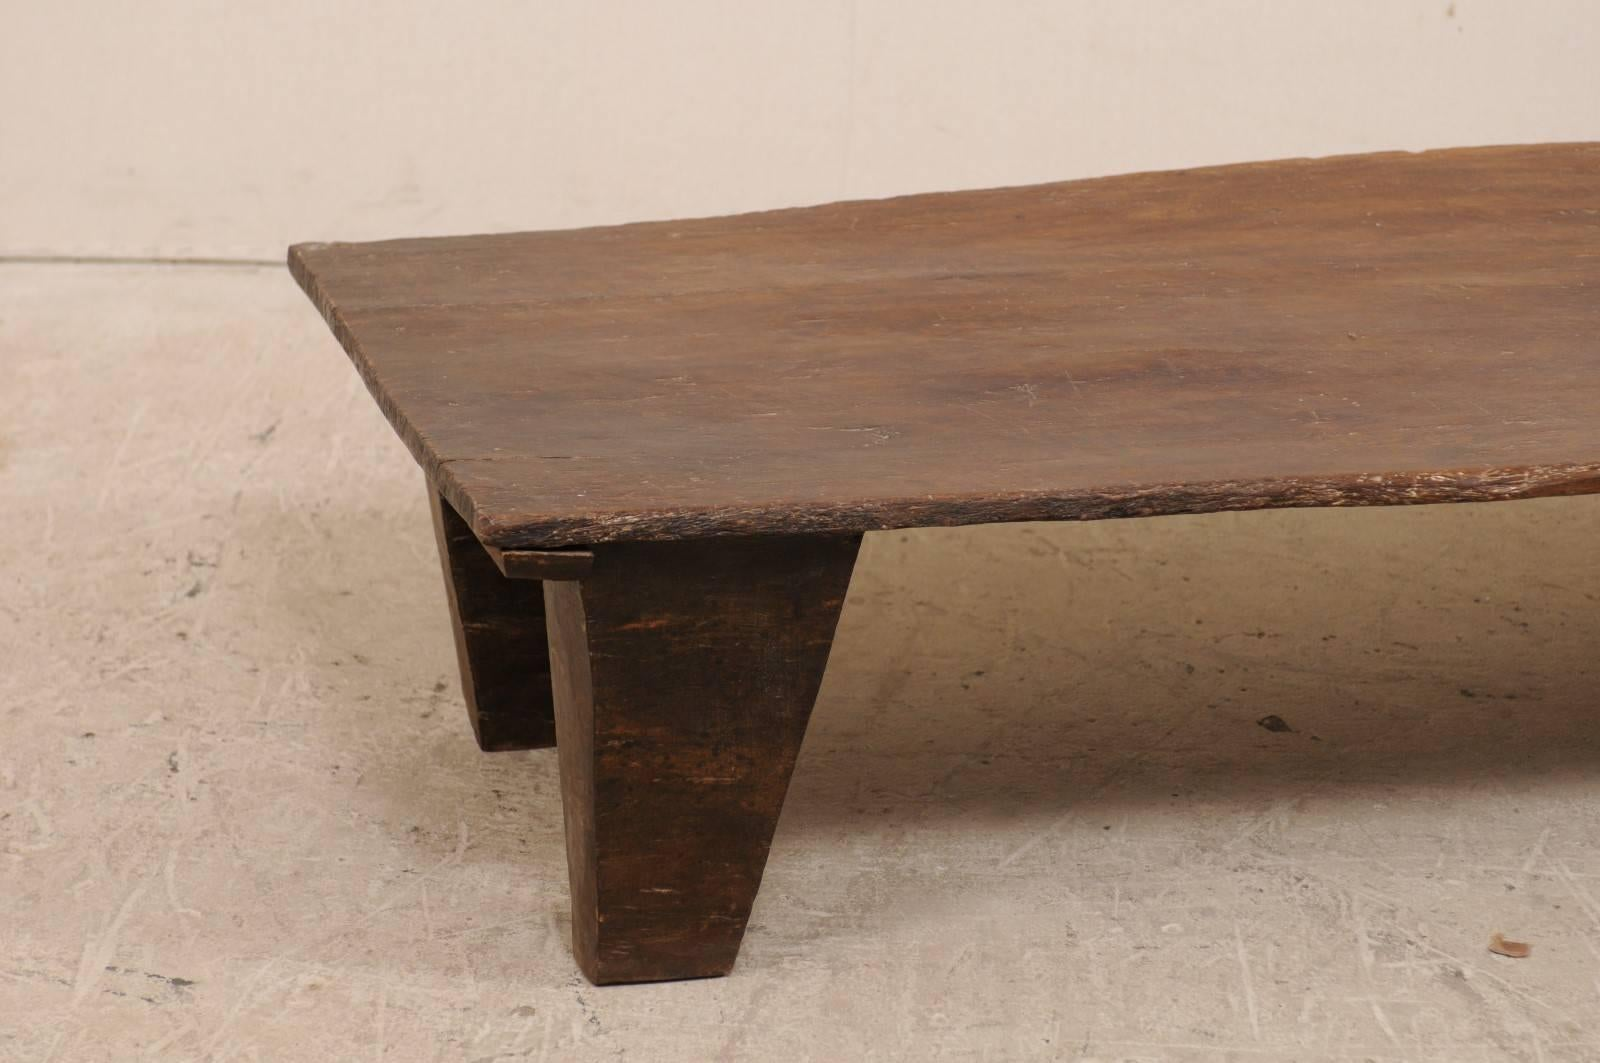 Indian Primitive Rustic Naga Wood Coffee Table From The Early 20th Century,  India For Sale